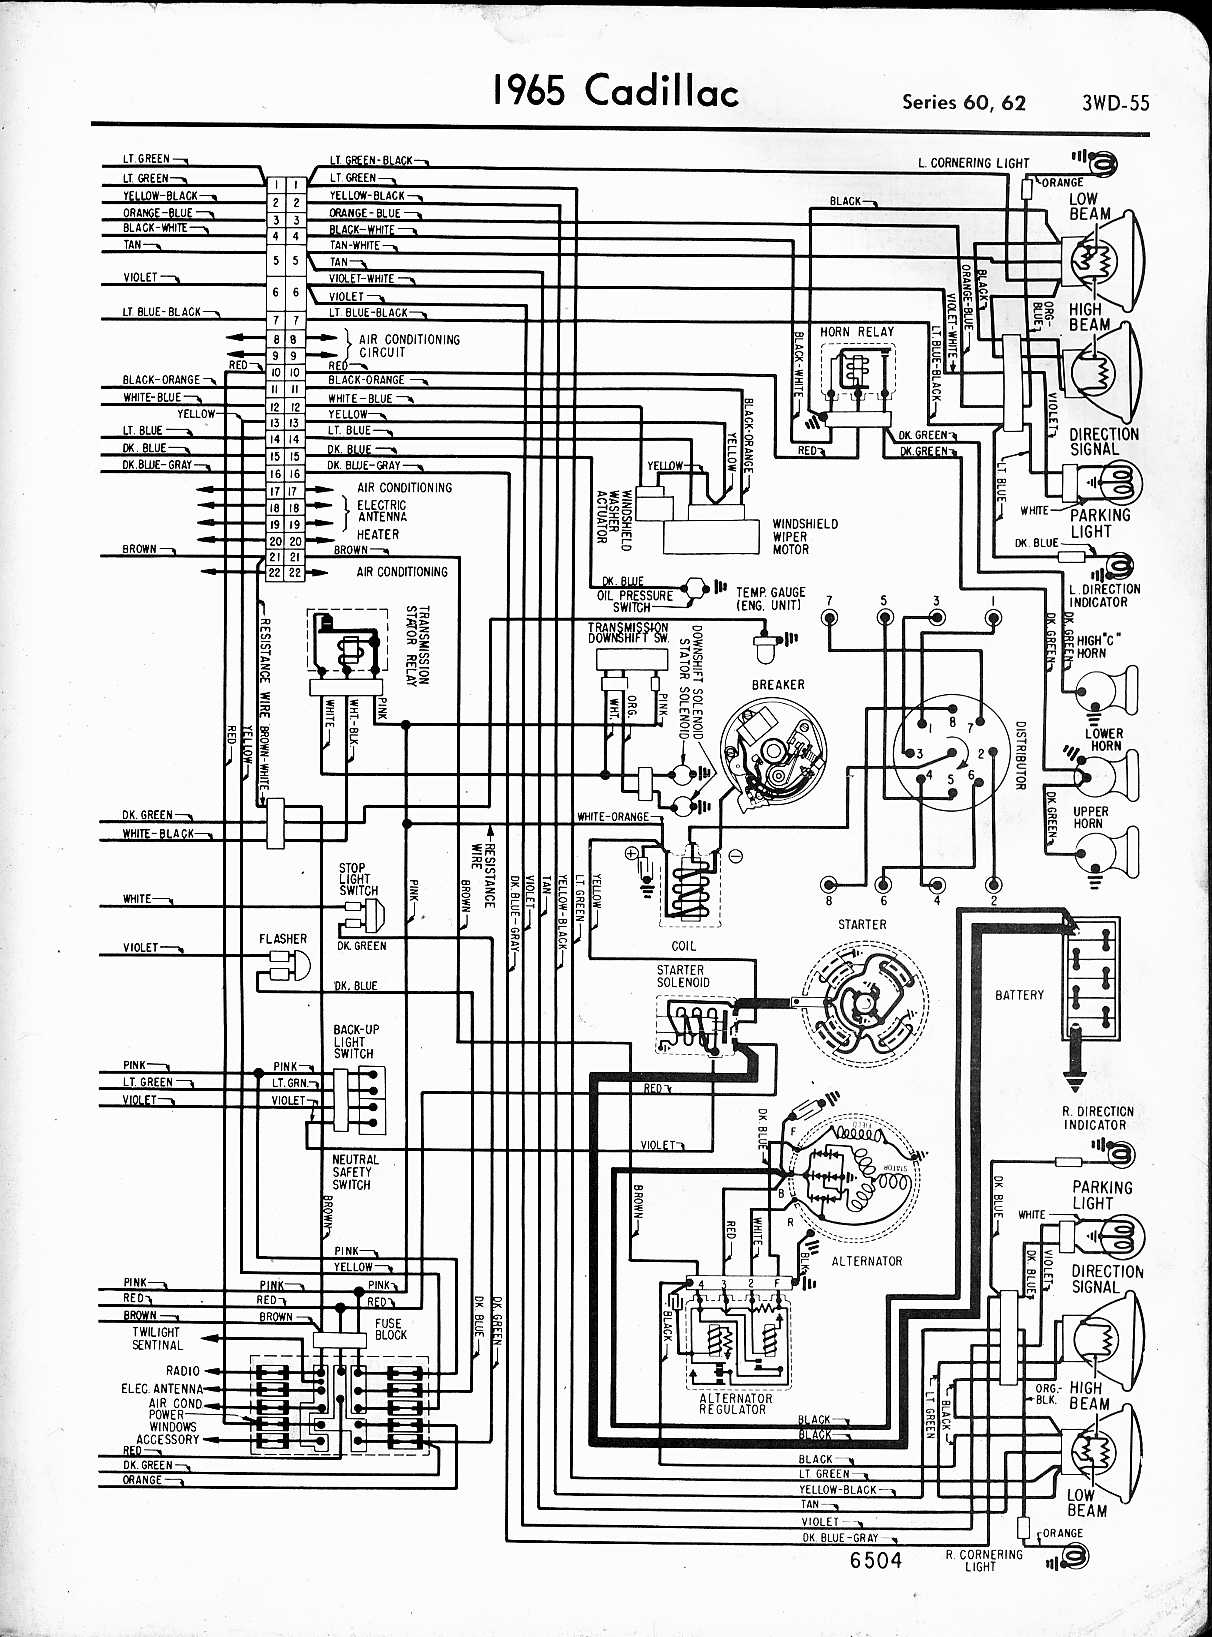 1991 Cadillac Wiring Diagram - Search Wiring Diagrams on